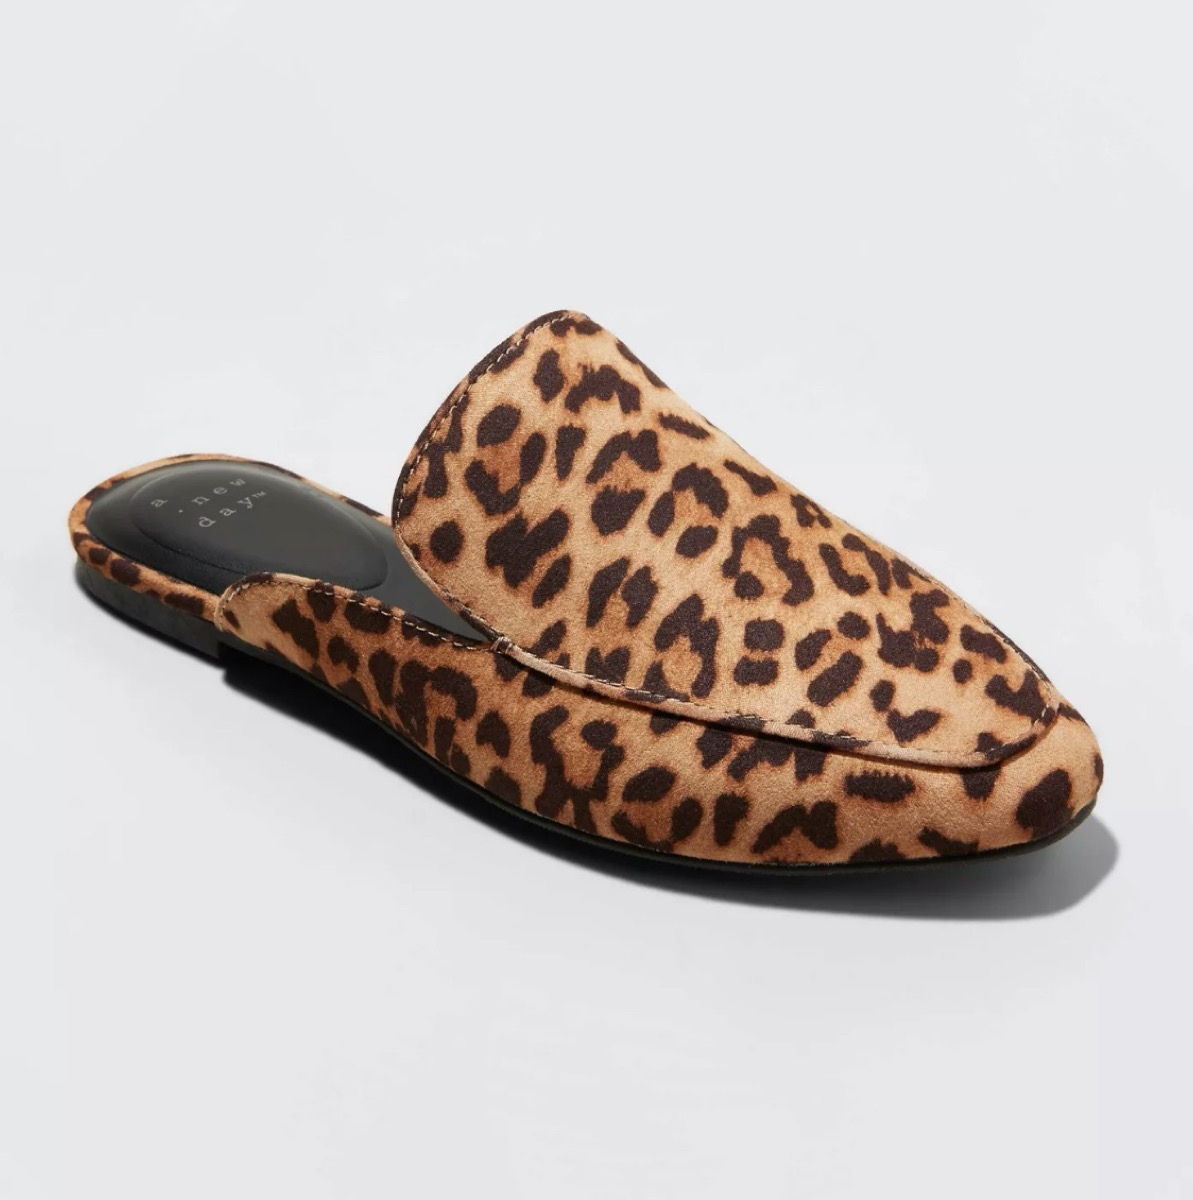 leopard print slide shoes on white background